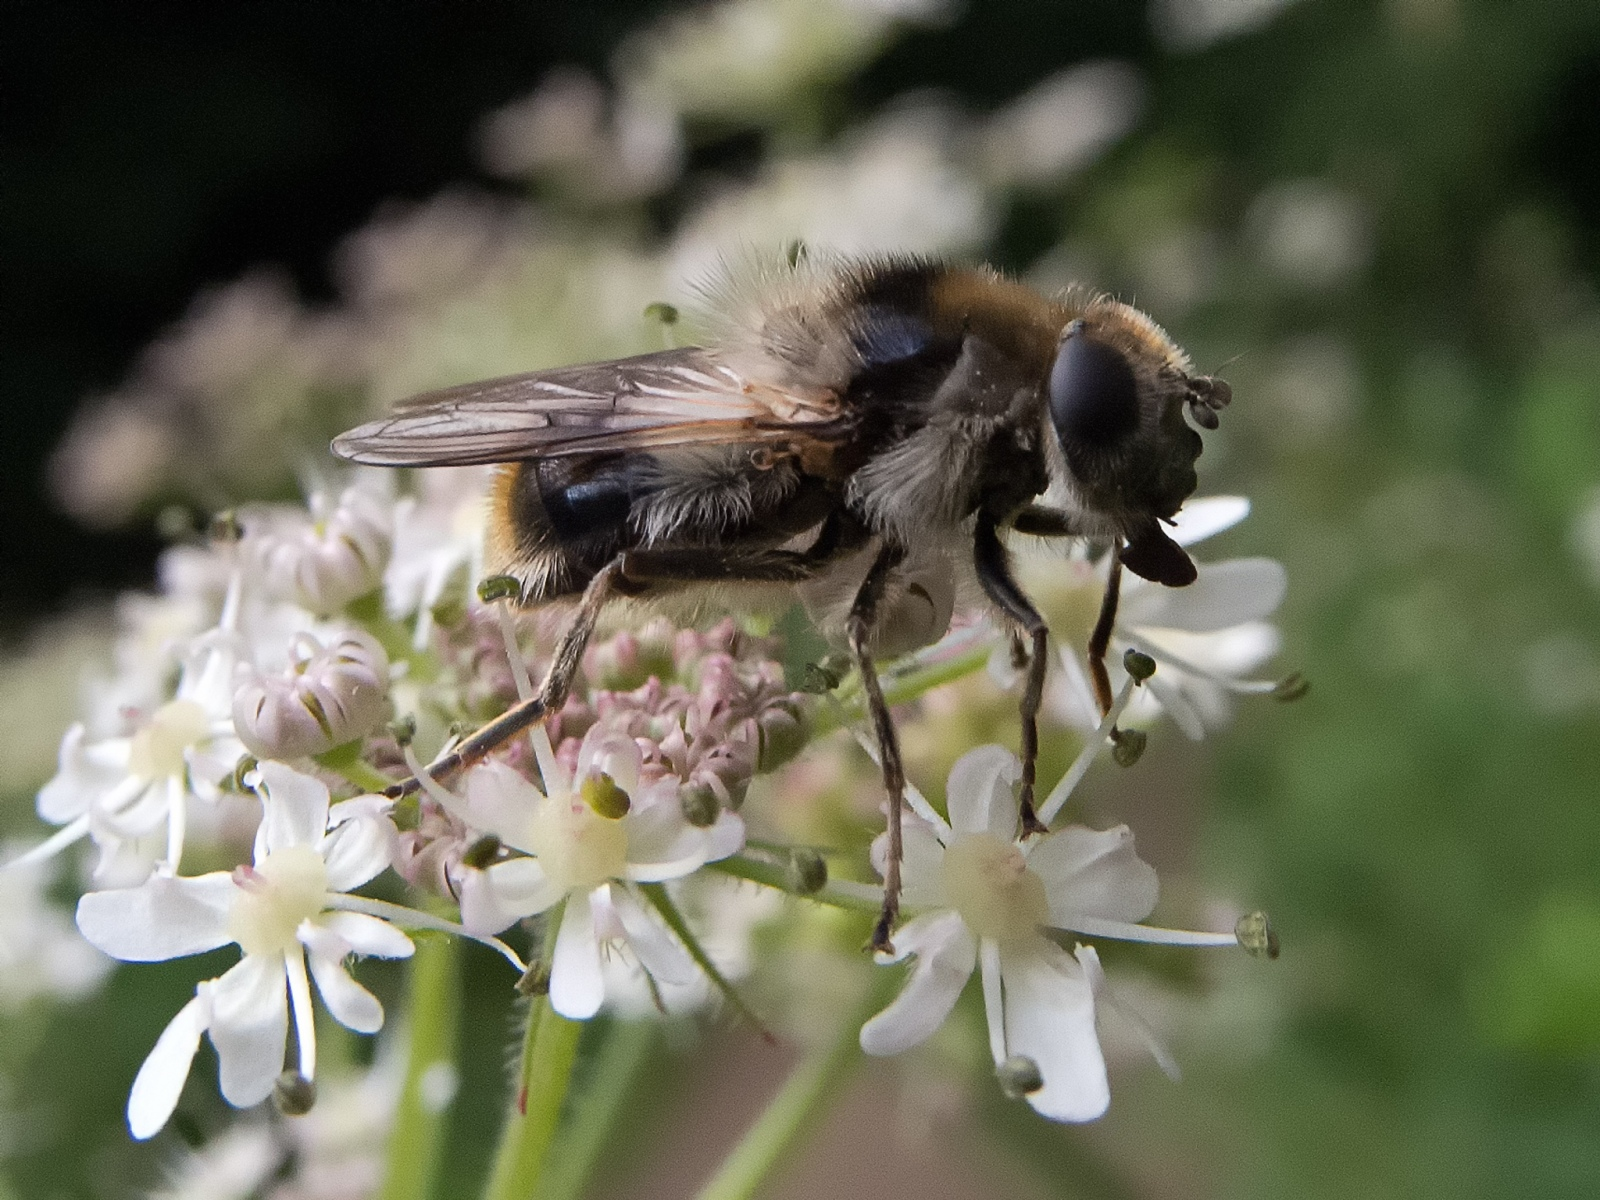 Cheilosia illustrata, Whitwell Wood, Derbyshire